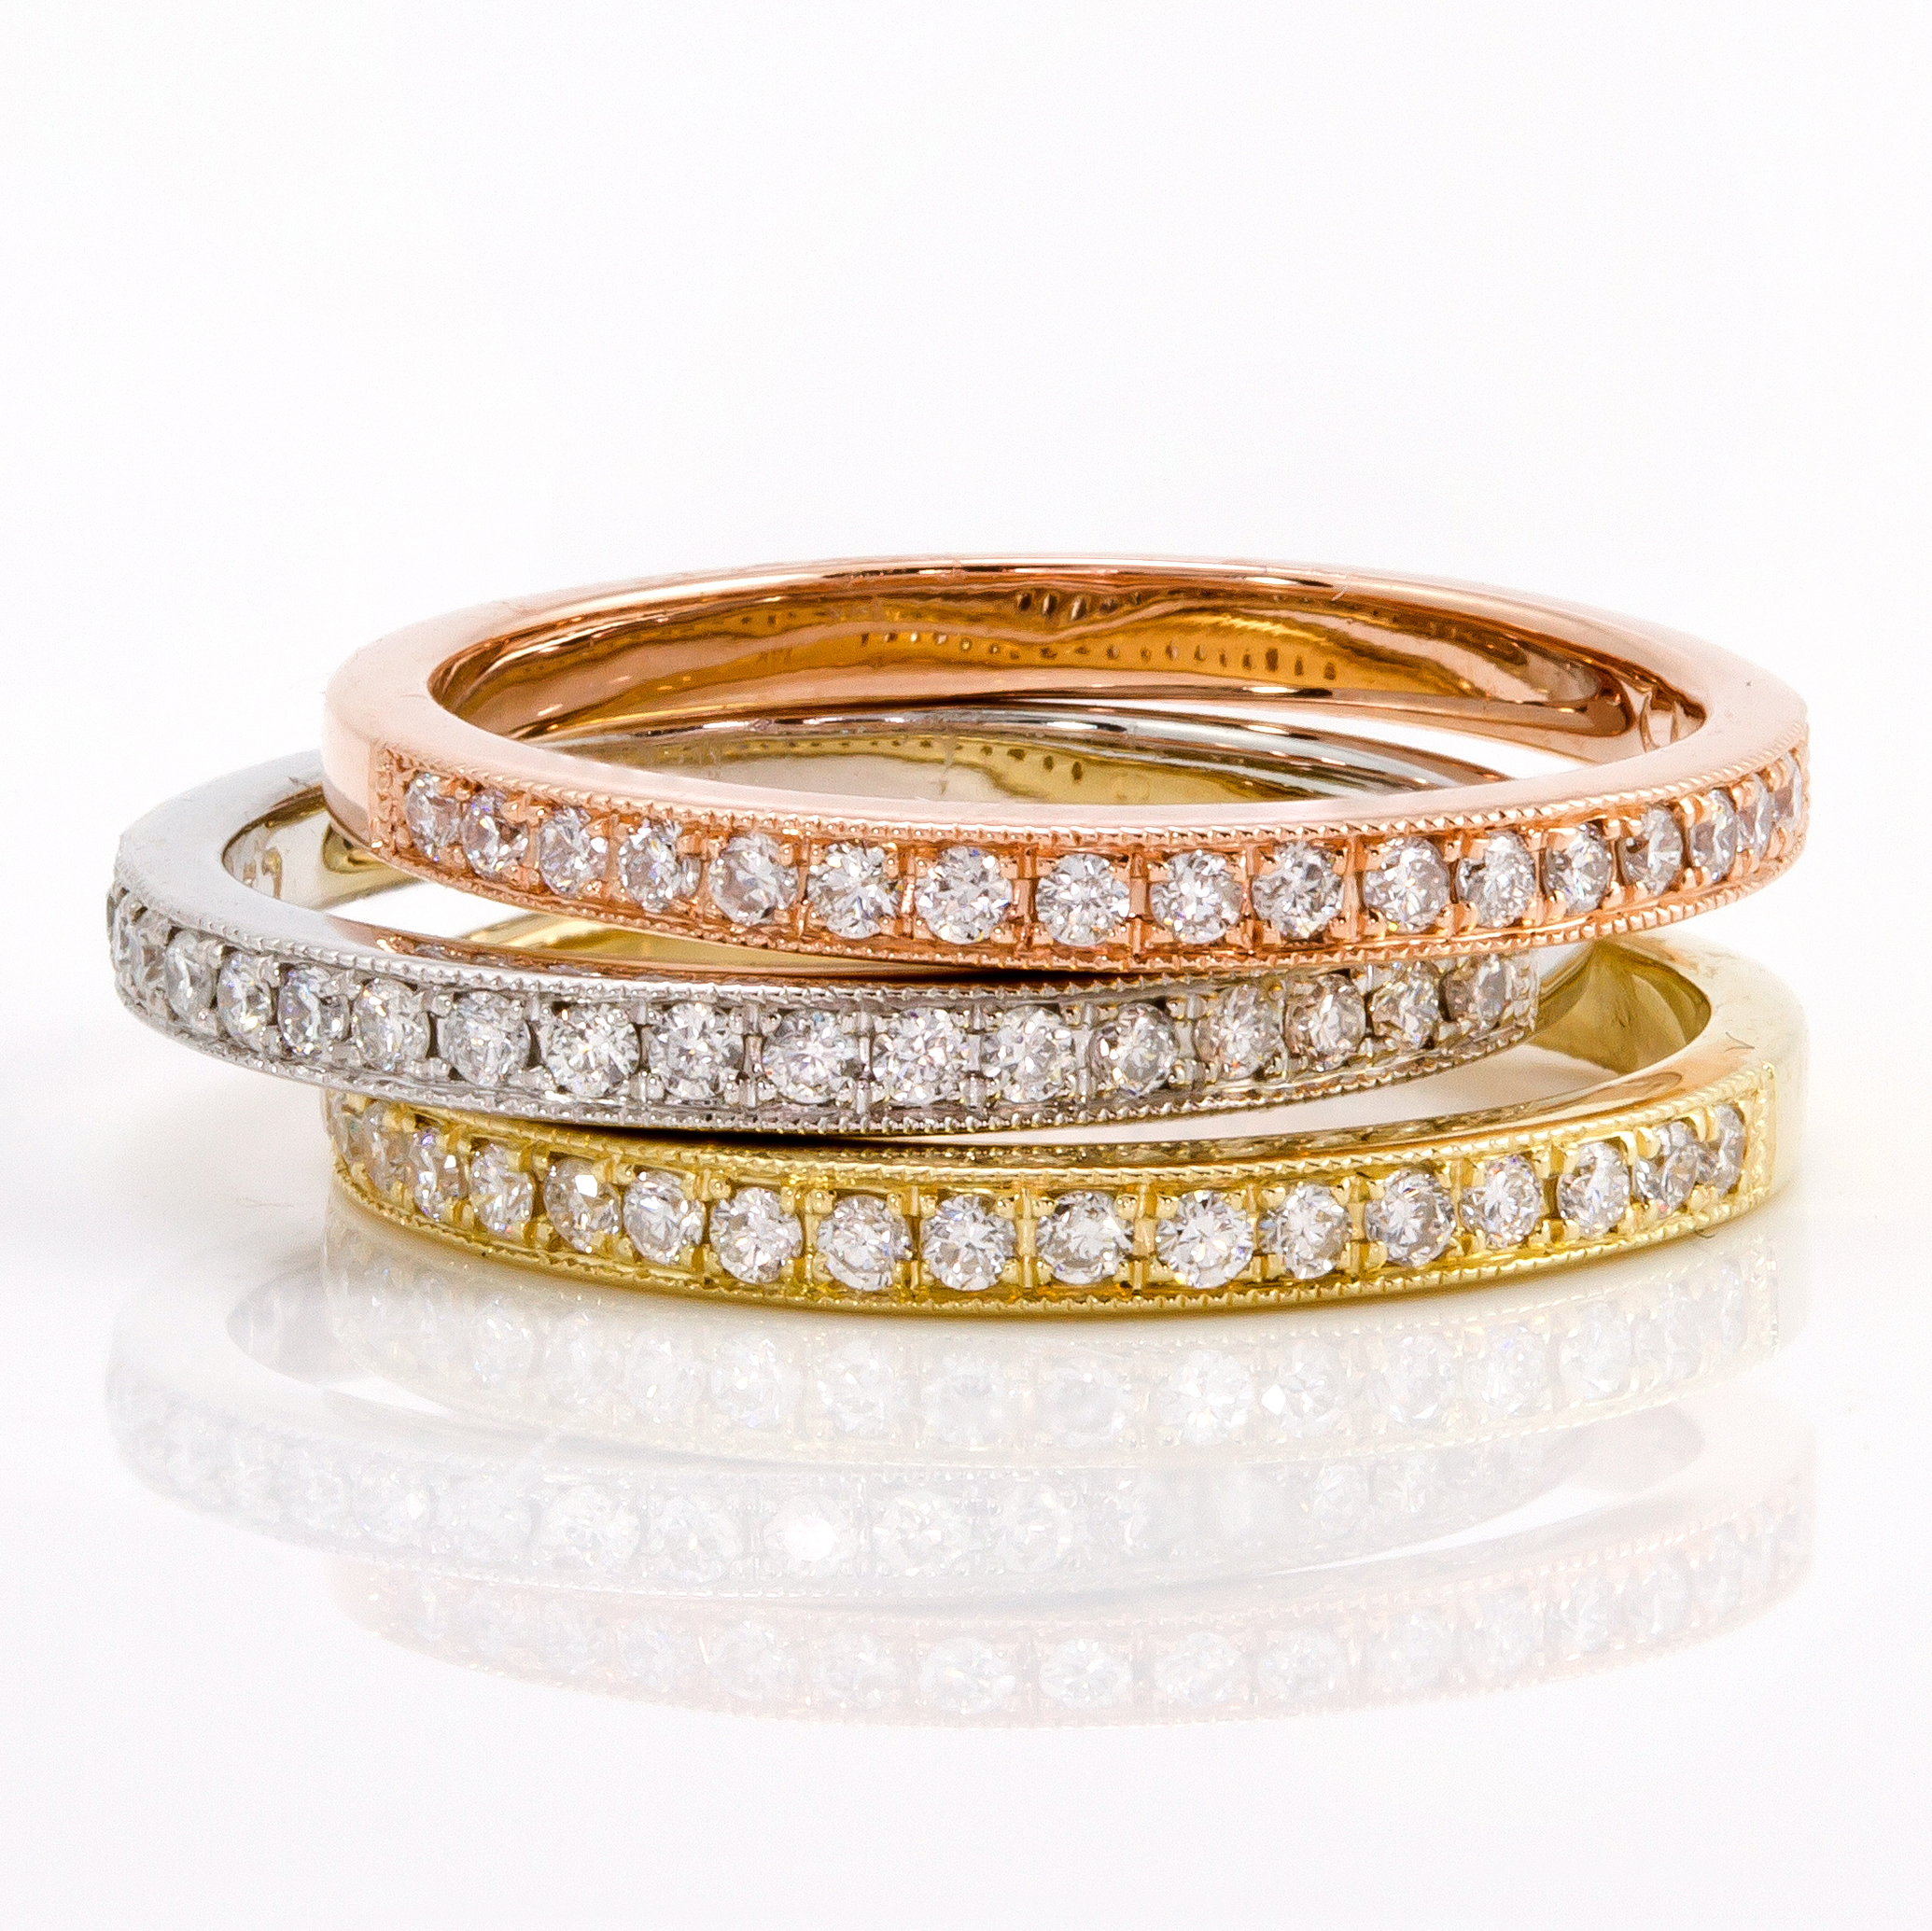 Diamond rings in yellow, white and rose gold